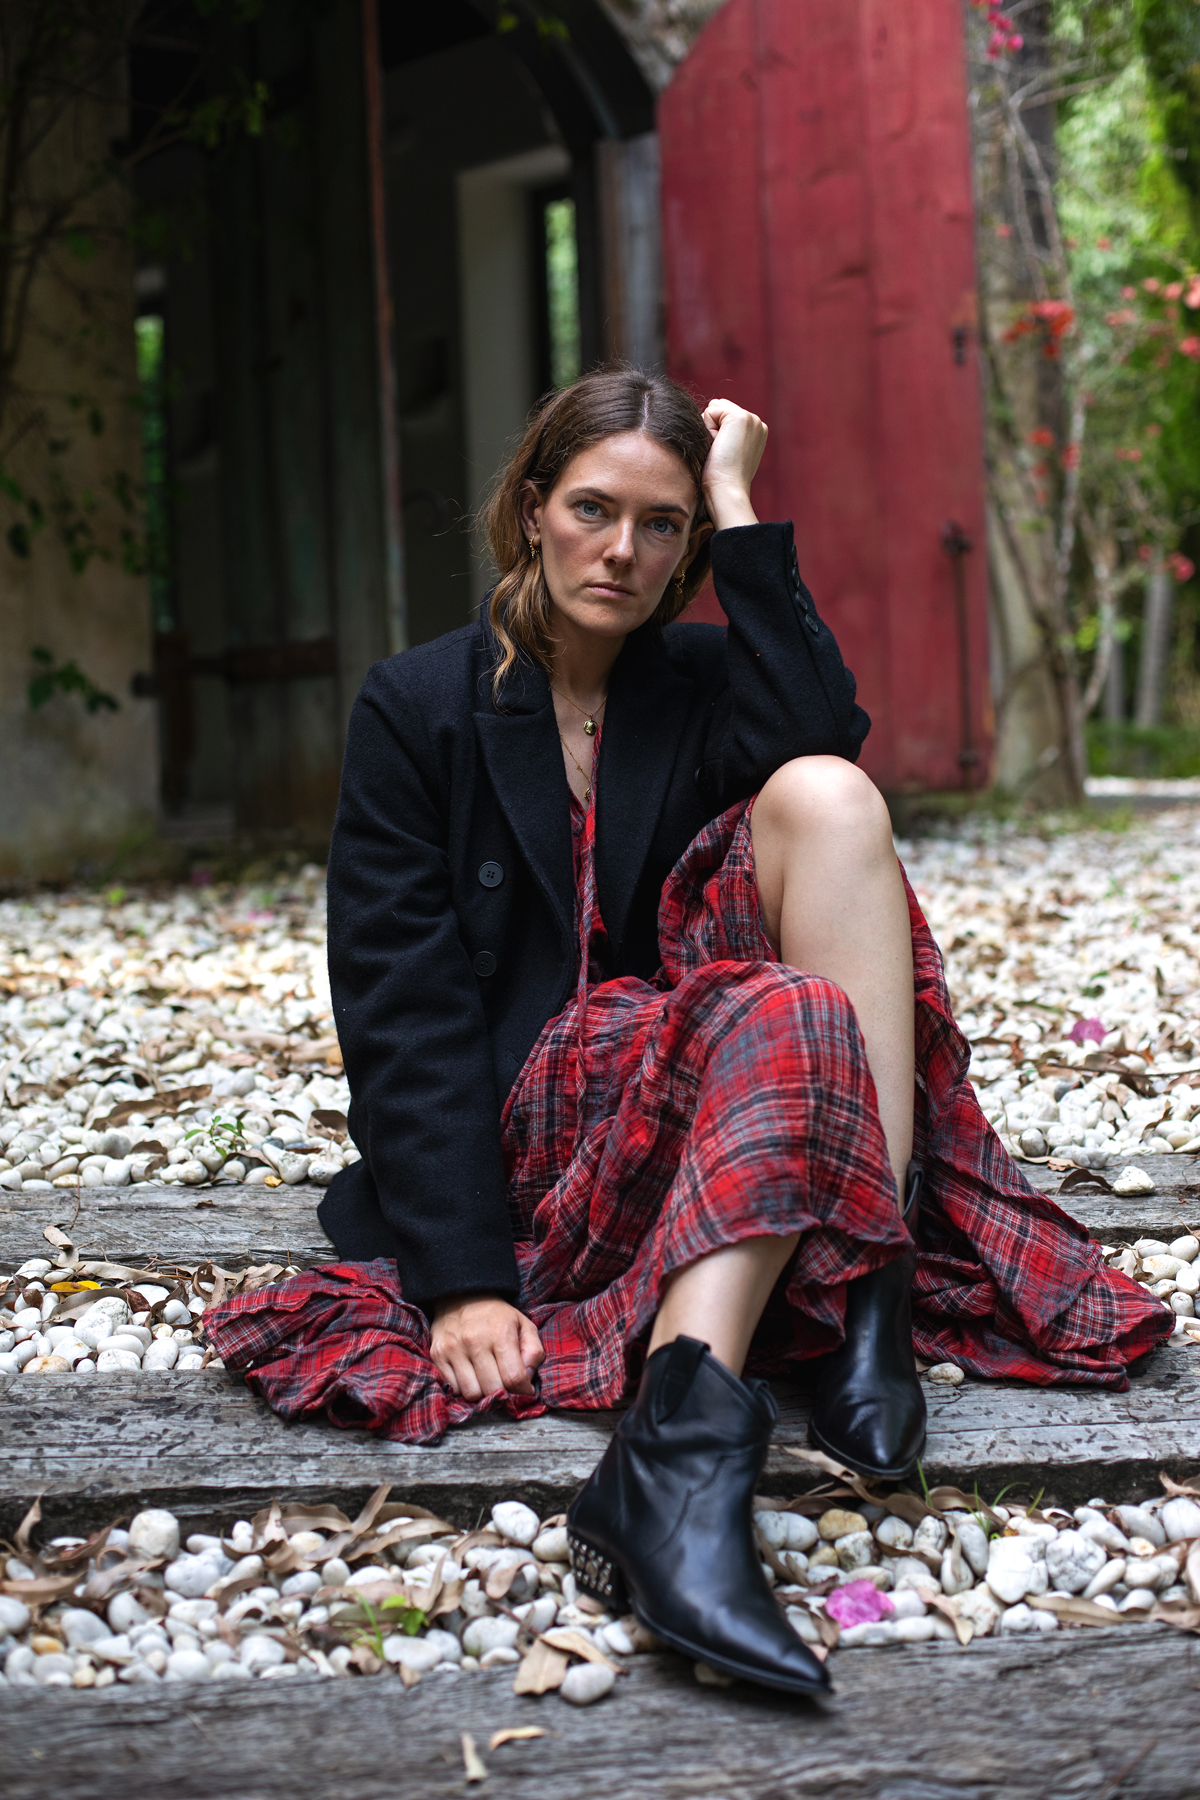 Bohemian Traders FIESTA MIDI DRESS IN BARBADOS CHERRY PLAID worn with black blazer by Inspiring Wit fashion blogger Jenelle with Isabel Marant black boots